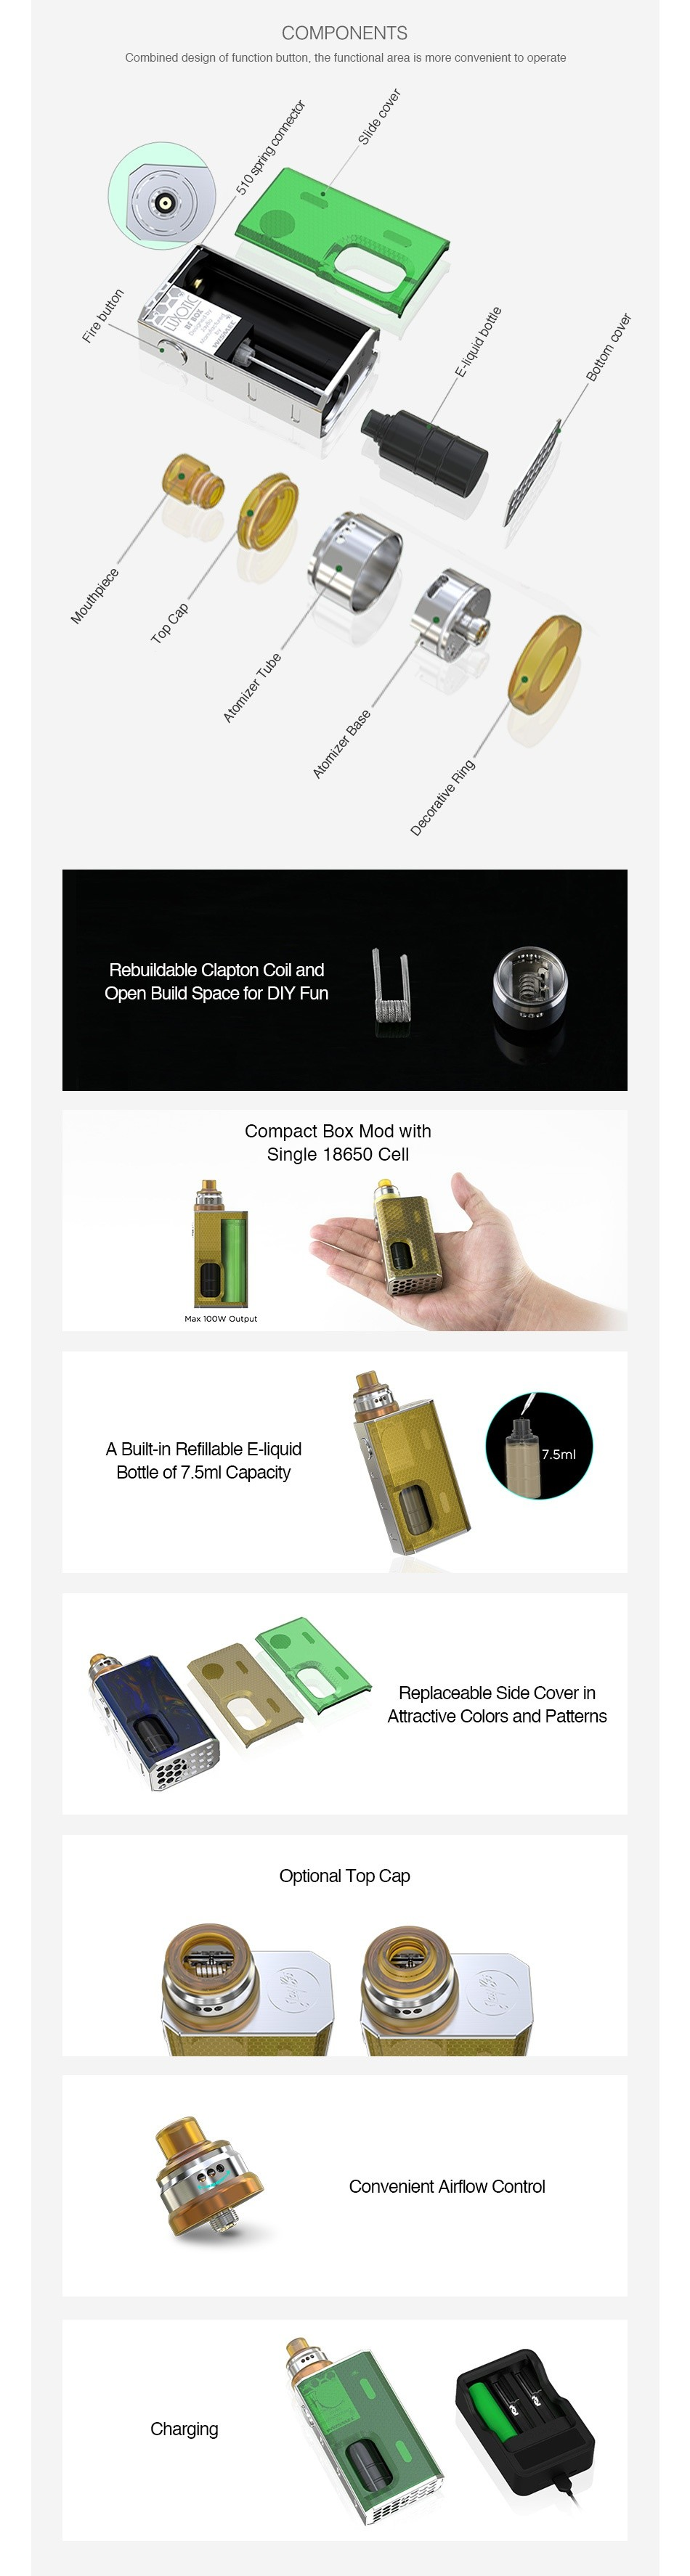 WISMEC Luxotic BF Box Kit with Tobhino COMPONENTS combine cosign of runcton buton  tc functio na arca ls morc convenient to operate   buildable Clapton Coil and Open Build Space for DIY Fun Single 18650 Cel A Built in Refillable E liquid Bottle of 7 5ml Capacity eplaceable side Cover in